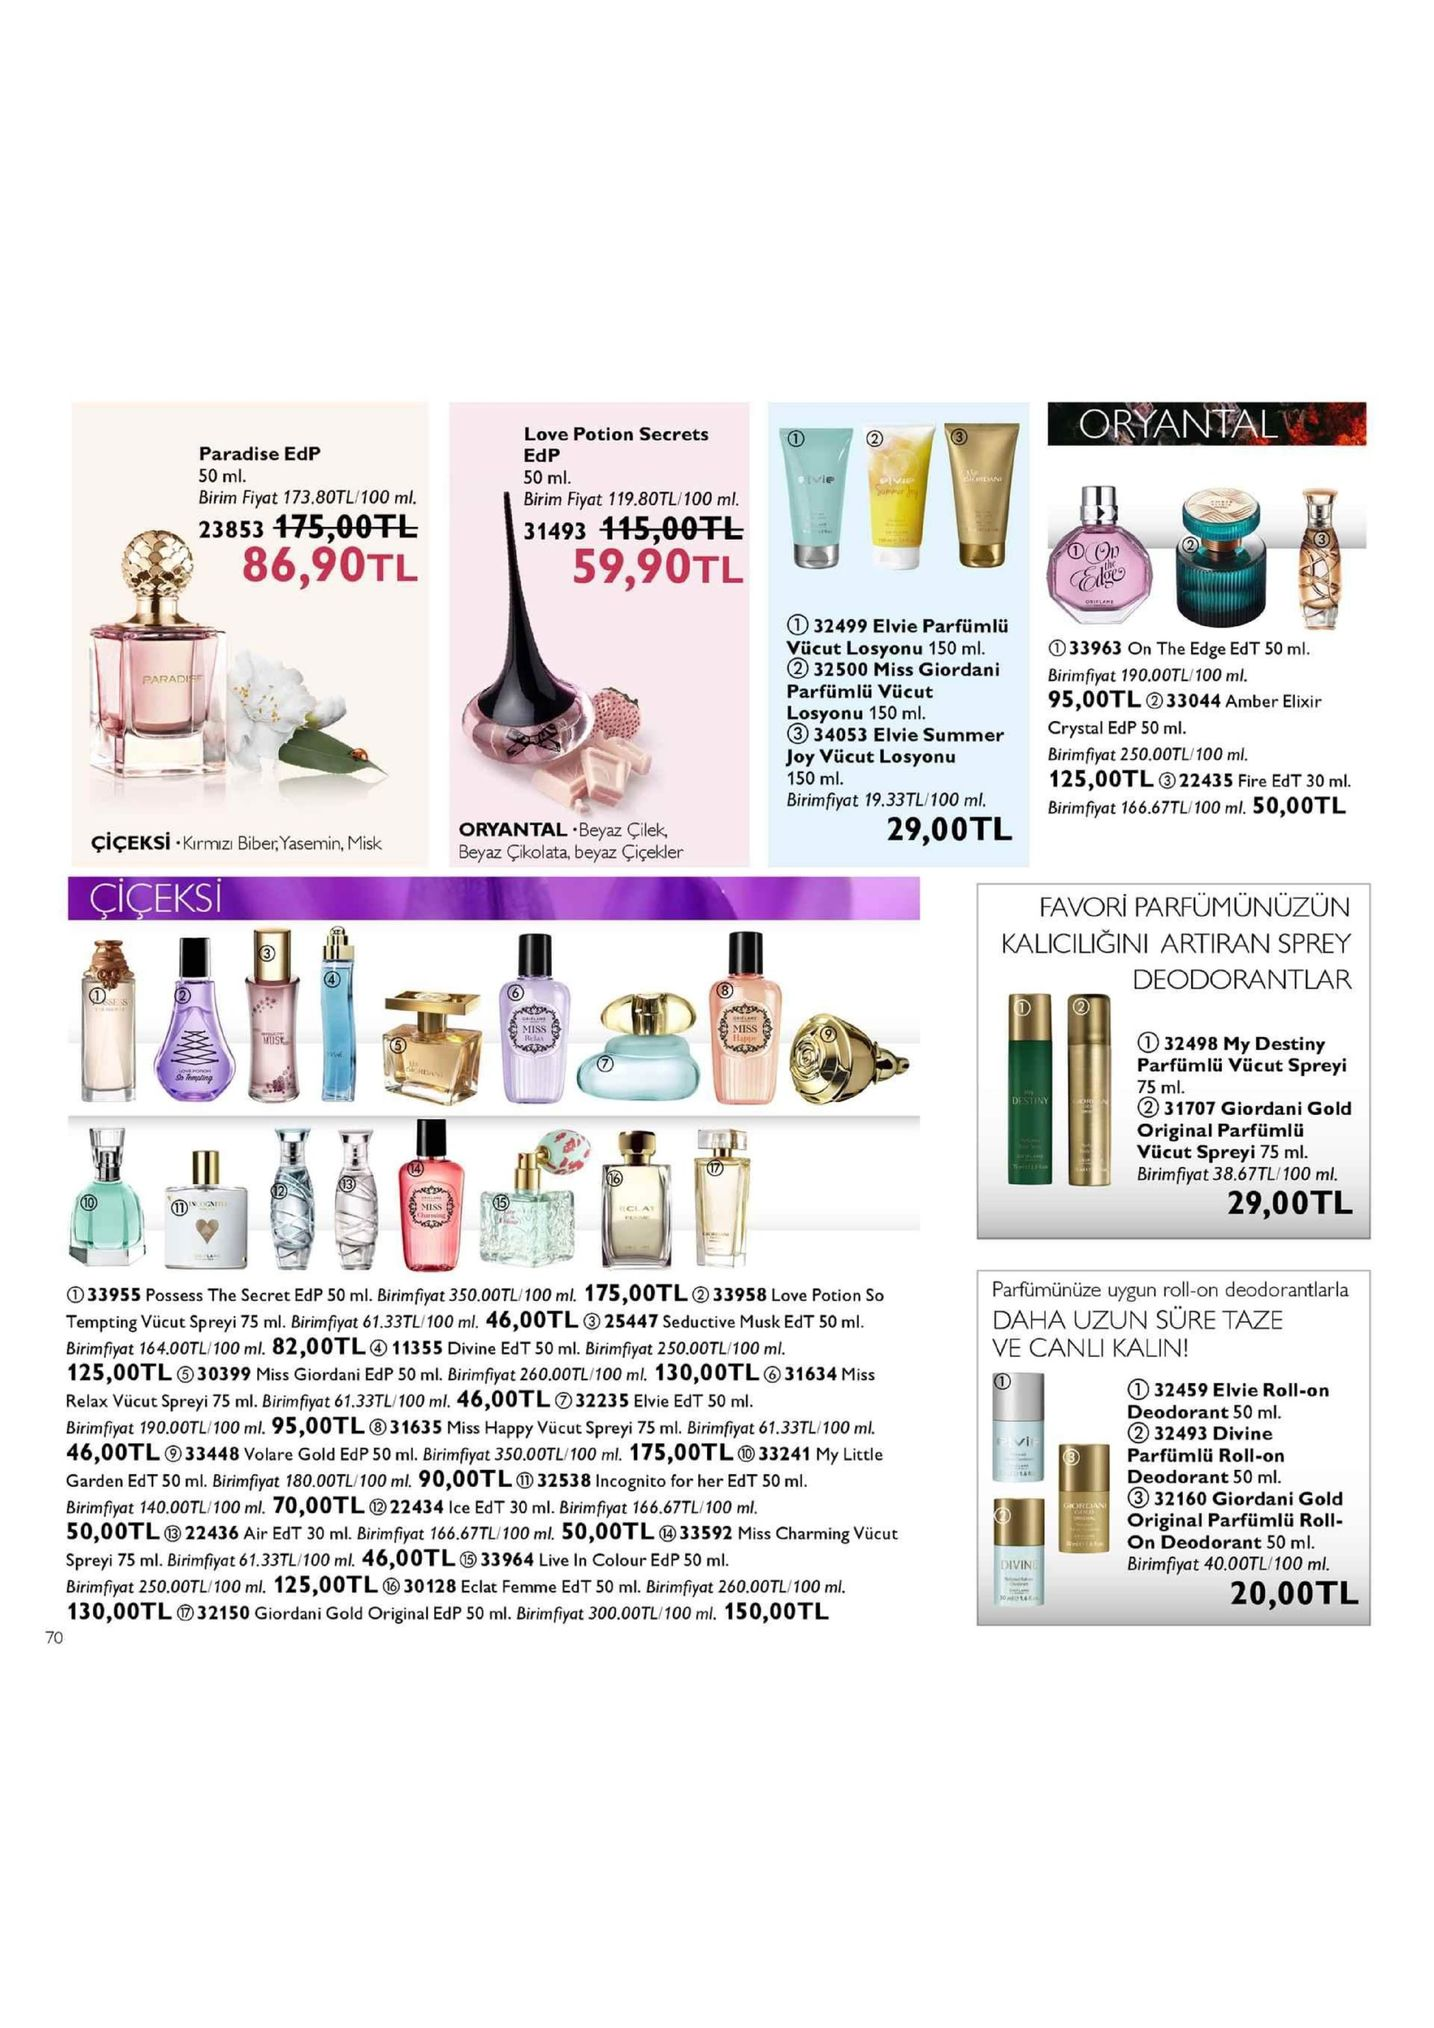 oryantal paradise edp 50 ml. birim fiyat 173.80tl/100 ml. love potion secrets edp 50 ml. birim fiyat 119.80tl/100 ml. 31493 115 00tl 23853 175-00fl 3 86,90tl 59,90tl l 1 32499 elvie parfiümlü vücut losyonu 150 ml. d33963 on the edge edt 50 ml 2 32500 miss giordani birimfyot 190.00tl/100 m ss giordanibirimfiyat 190.00tl/100 ml paradiee parfümlü vücut losyonu 150 ml 95,00tl 33044 amber elixir 34053 elvie summer crystal edp 50 ml. joy vücut losyonu 150 ml birimfiyat 250.00tl/100 ml 125,00tl22435 fire edt 30 ml birimfiyat 166.67tl/100 ml 50,0otl brimfiyot 19.33tl/100mb oryantal beyaz çilek beyaz çikolata, beyaz çiçekler 29,00tl çiçeks-kirmizi biber,yasemin, misk ciceks favori parfümünüzün kaliciliğini artiran sprey deodorantlar miss iss 1 32498 my destiny parfümlü vücut spreyi 75 ml. ② 31707 giordani gold original parfümliü vücut spreyi 75 ml. birimfiyat 38.67tl/100 ml. destiny 29,00tl cla parfümünüze uygun roll-on deodorantlarla daha uzun sure taze ve canli kalin! ① 33955 possess the secret edp 50 ml. birimtiyat 350.00tl 100 ml, 1 75,00tl ② 33958 love potion so tempting vücut spreyi 75 ml. birimfiyat 61.33tl/100 ml. 46,00tl25447 seductive musk edt 50 ml birimfiyat 164.00tl/100 ml. 82,00tl11355 divine edt 50 ml. birimfiyat 250.00tl/100 ml. 125,00tl 30399 miss giordani edp 50 ml. binimfyot 260,007l 100 ml. 130,00tl o31634 miss relax vücut spreyi 75 ml. birimfiyat 61.33tl/100 ml. 46,00tld32235 elvie edt 50 ml birimfiyat 190.00tl/100 ml. 95,00tl31635 miss happy vücut spreyi 75 ml. birimfiyat 61.33tl/100 mi. 46,00tl ⑨33448 volare gold edp 50 ml. birim fiyat 350.00tl 100 ml. 175 ,00tl ⑩33241 my little garden edt 50 ml. birimfiyat 180.00tl 100 ml, 90,00tlo) 32538 incognito for her edt 50 ml. birimfiyat 140.00tl 100 ml, 70,00tl ⑩22434 ice edt 30 ml. birimfiyat 166.67tl 100 ml. 50,00tl ⑩22436 air edt 30 ml. birim fiyat 166.67tl 100ml 50,00tl ® 33592 miss charming vücut spreyi 75 ml. birimfiyat 61.33tl/100 ml. 46,00tl33964 live in colour edp 50 ml. birimfiyat 250.00tl 100ml 125,00tl ⑩30 128 eclat femme edt 50 ml. brimfiyat 260.00tu 100 ml. 13 0,00tl ⑦ 321 50 giordani gold original edp 50 ml. birim fiyat 300.00tl/100 ml. 1 5 0,00 tl 132459 elvie roll-on deodorant 50 ml 232493 divine parfümlü roll-on deodorant 50 ml 332160 giordani gold original parfümlü roll- on deodorant 50 ml birimfiyat 40.00tl/100 ml. 20,00tl 70